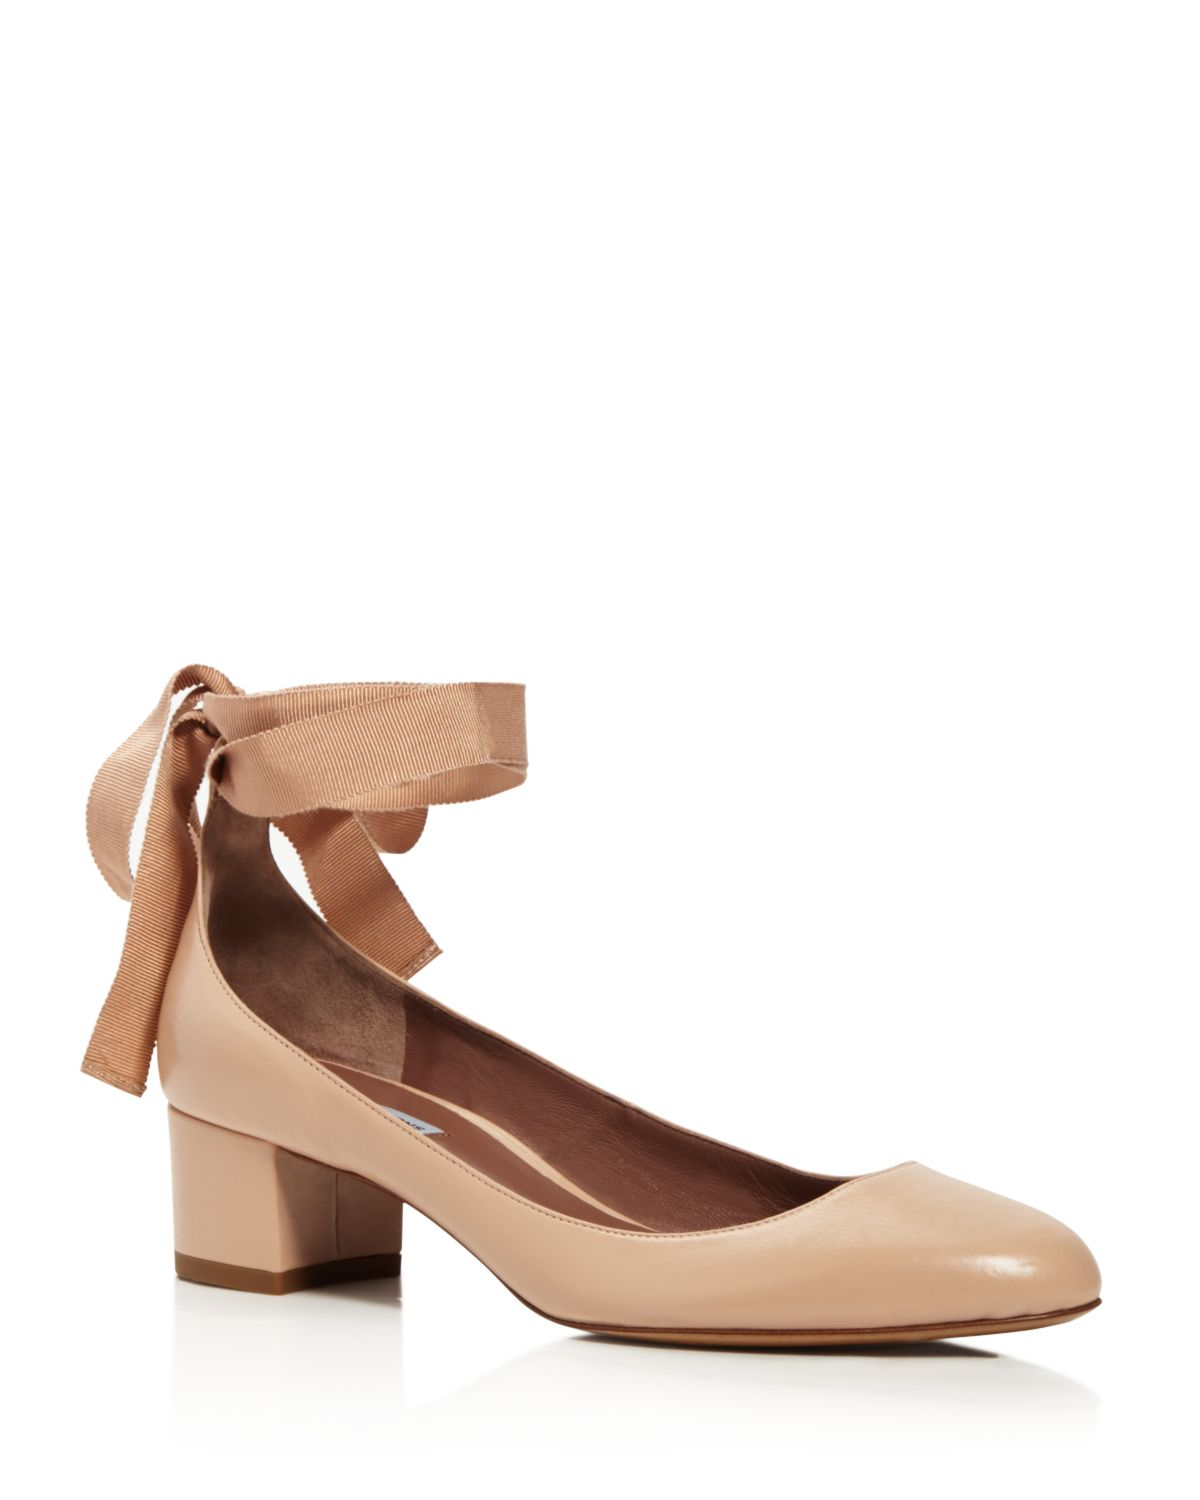 Tabitha Simmons Chloe Leather Ankle-Wrap Block Heel Pumps